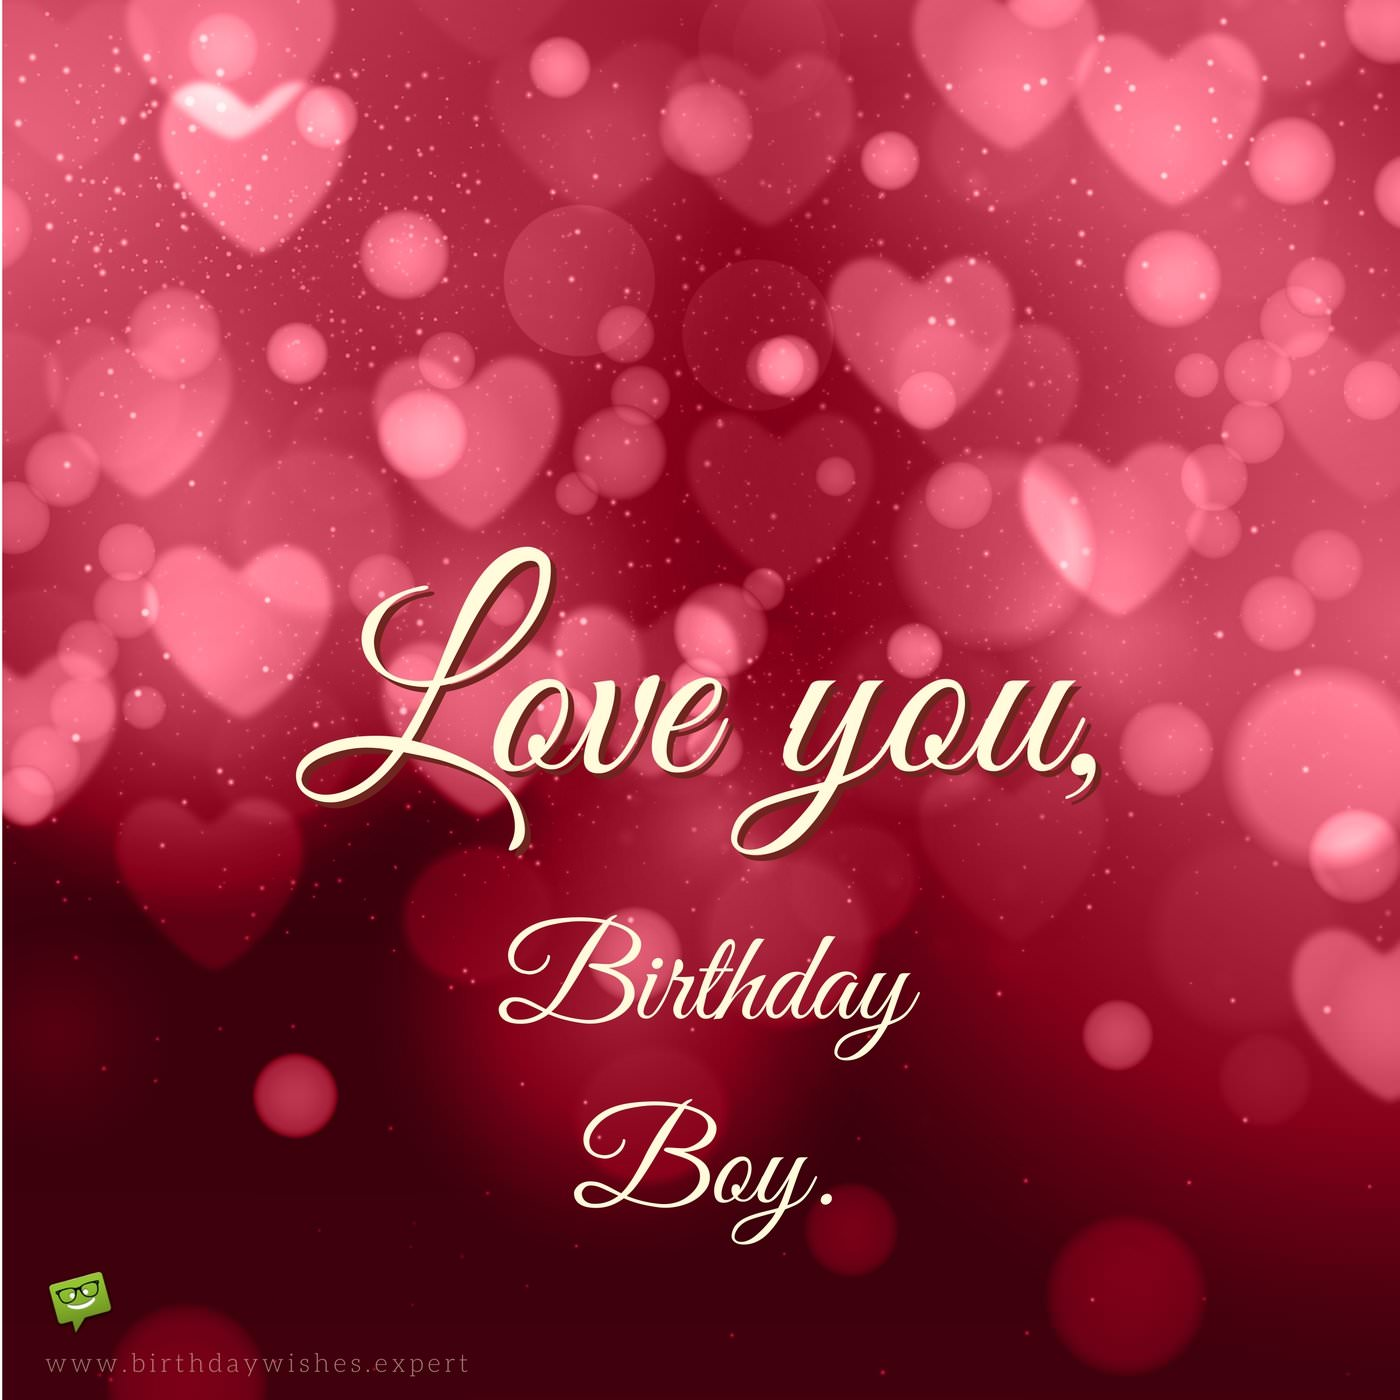 I Love You Wallpapers For Boyfriend : Smart Happy Birthday Wishes for your Boyfriend